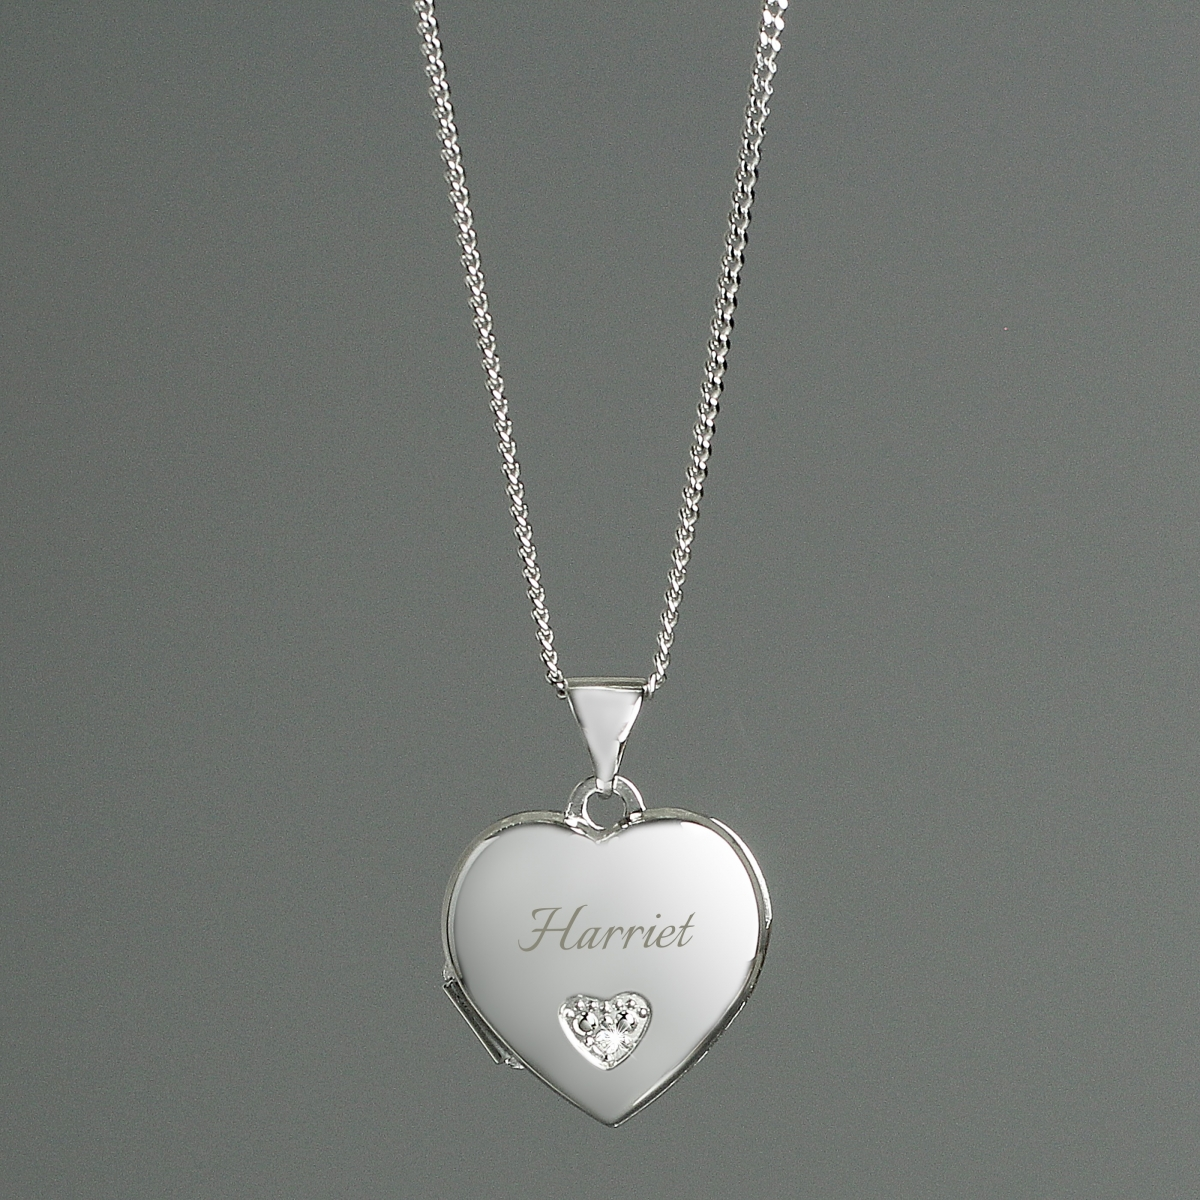 Personalised Sterling Silver and Cubic Zirconia Heart Locket Necklace (Name Only)